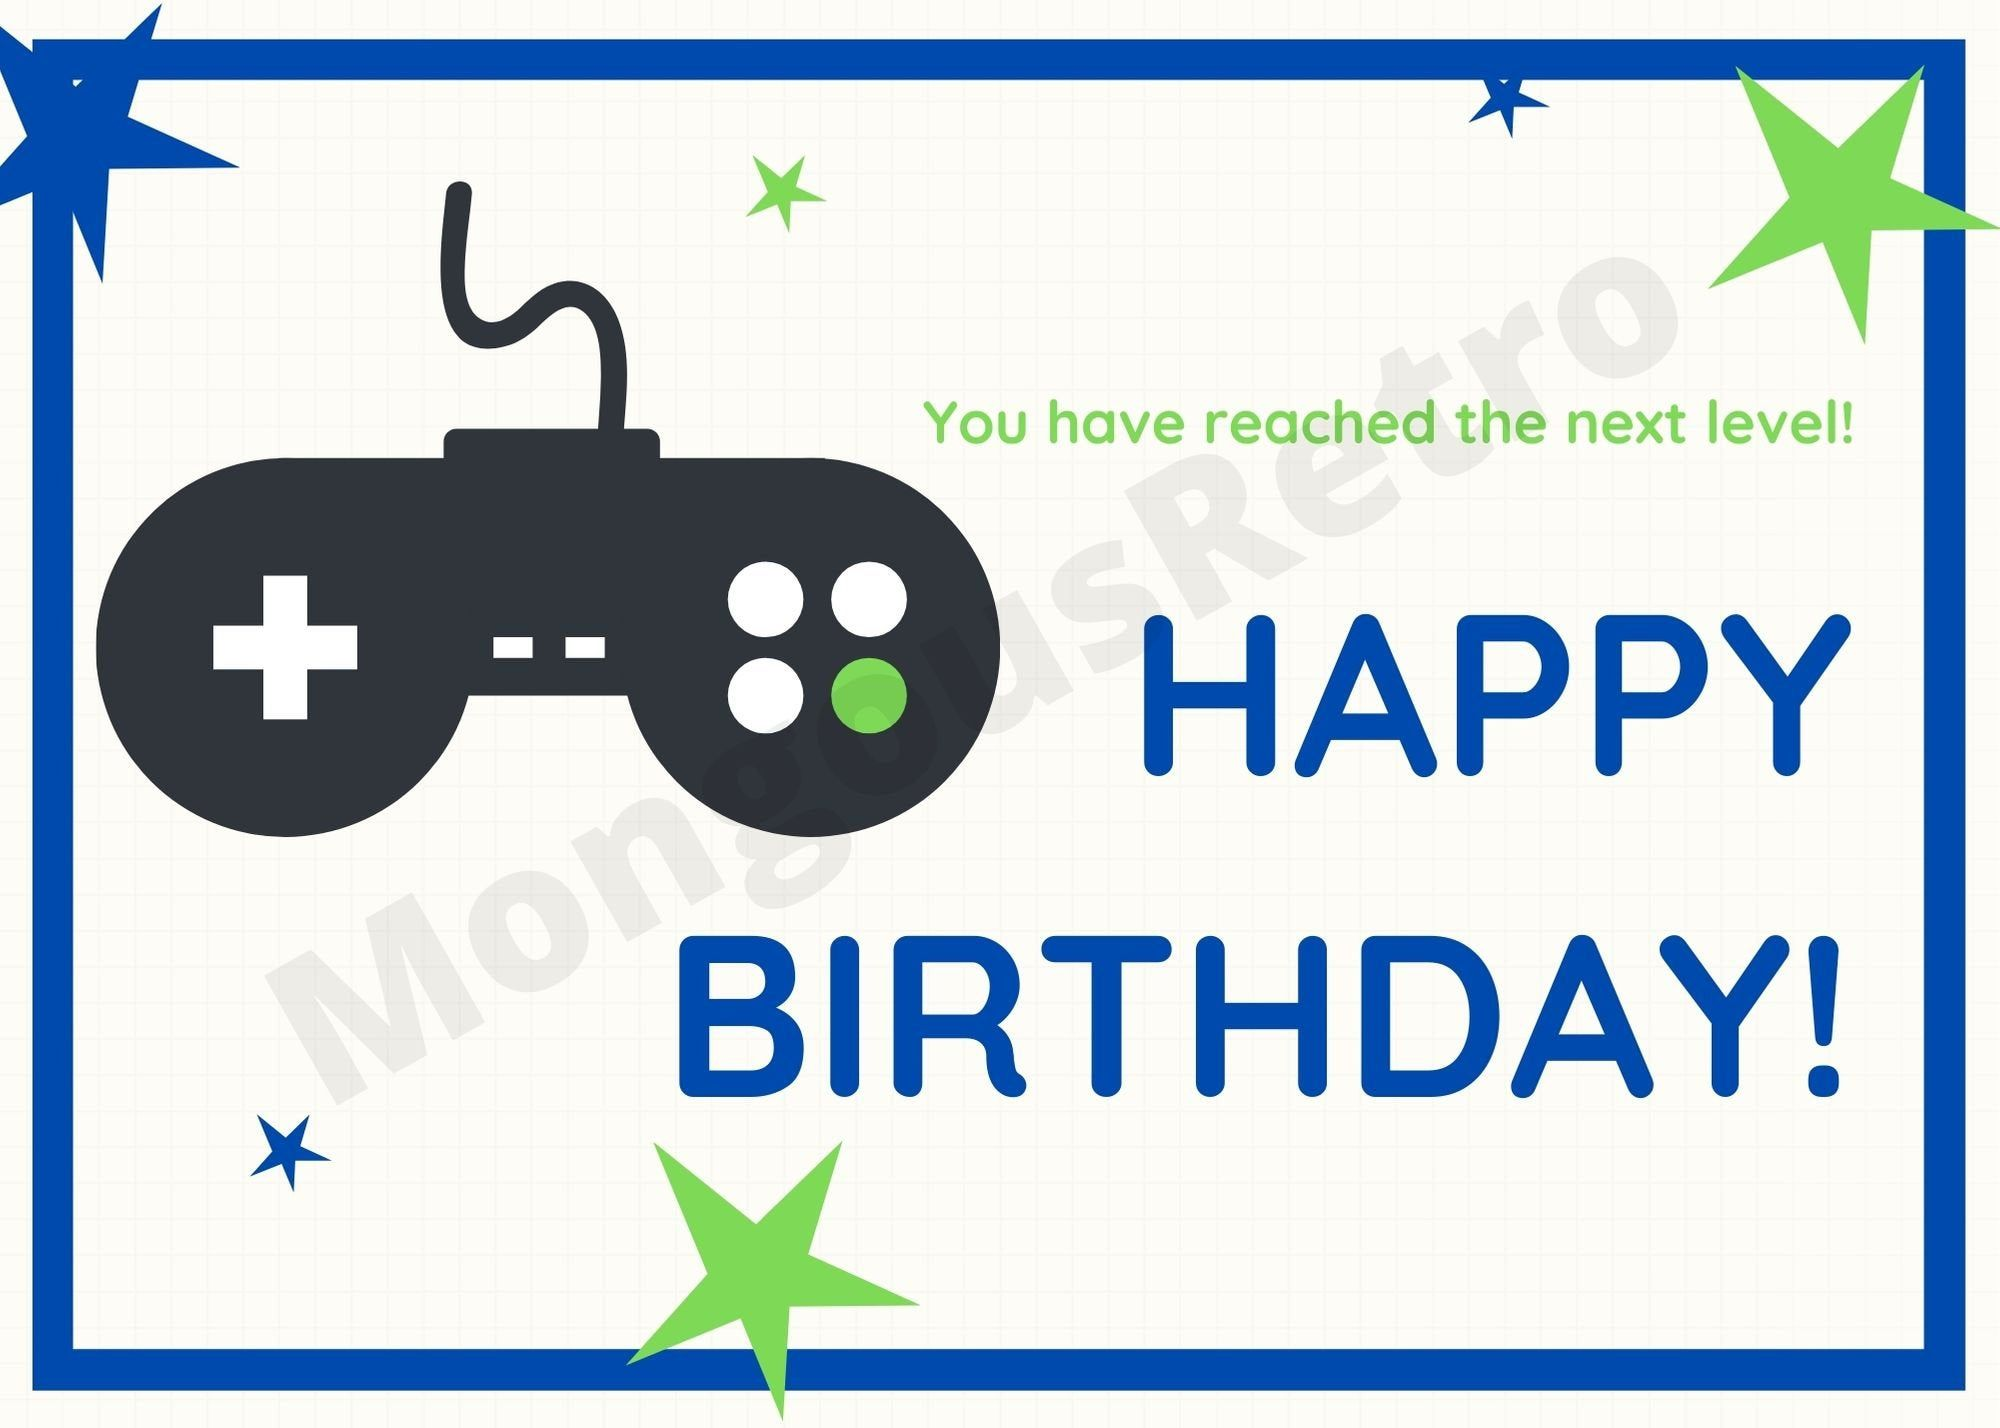 Gamer Birthday Card Digital Download You Have Reached The Next Level Happy Birthday Blue With Green Accent And Controller In 2021 Happy Birthday Gamer Birthday Cards Happy Birthday Lettering